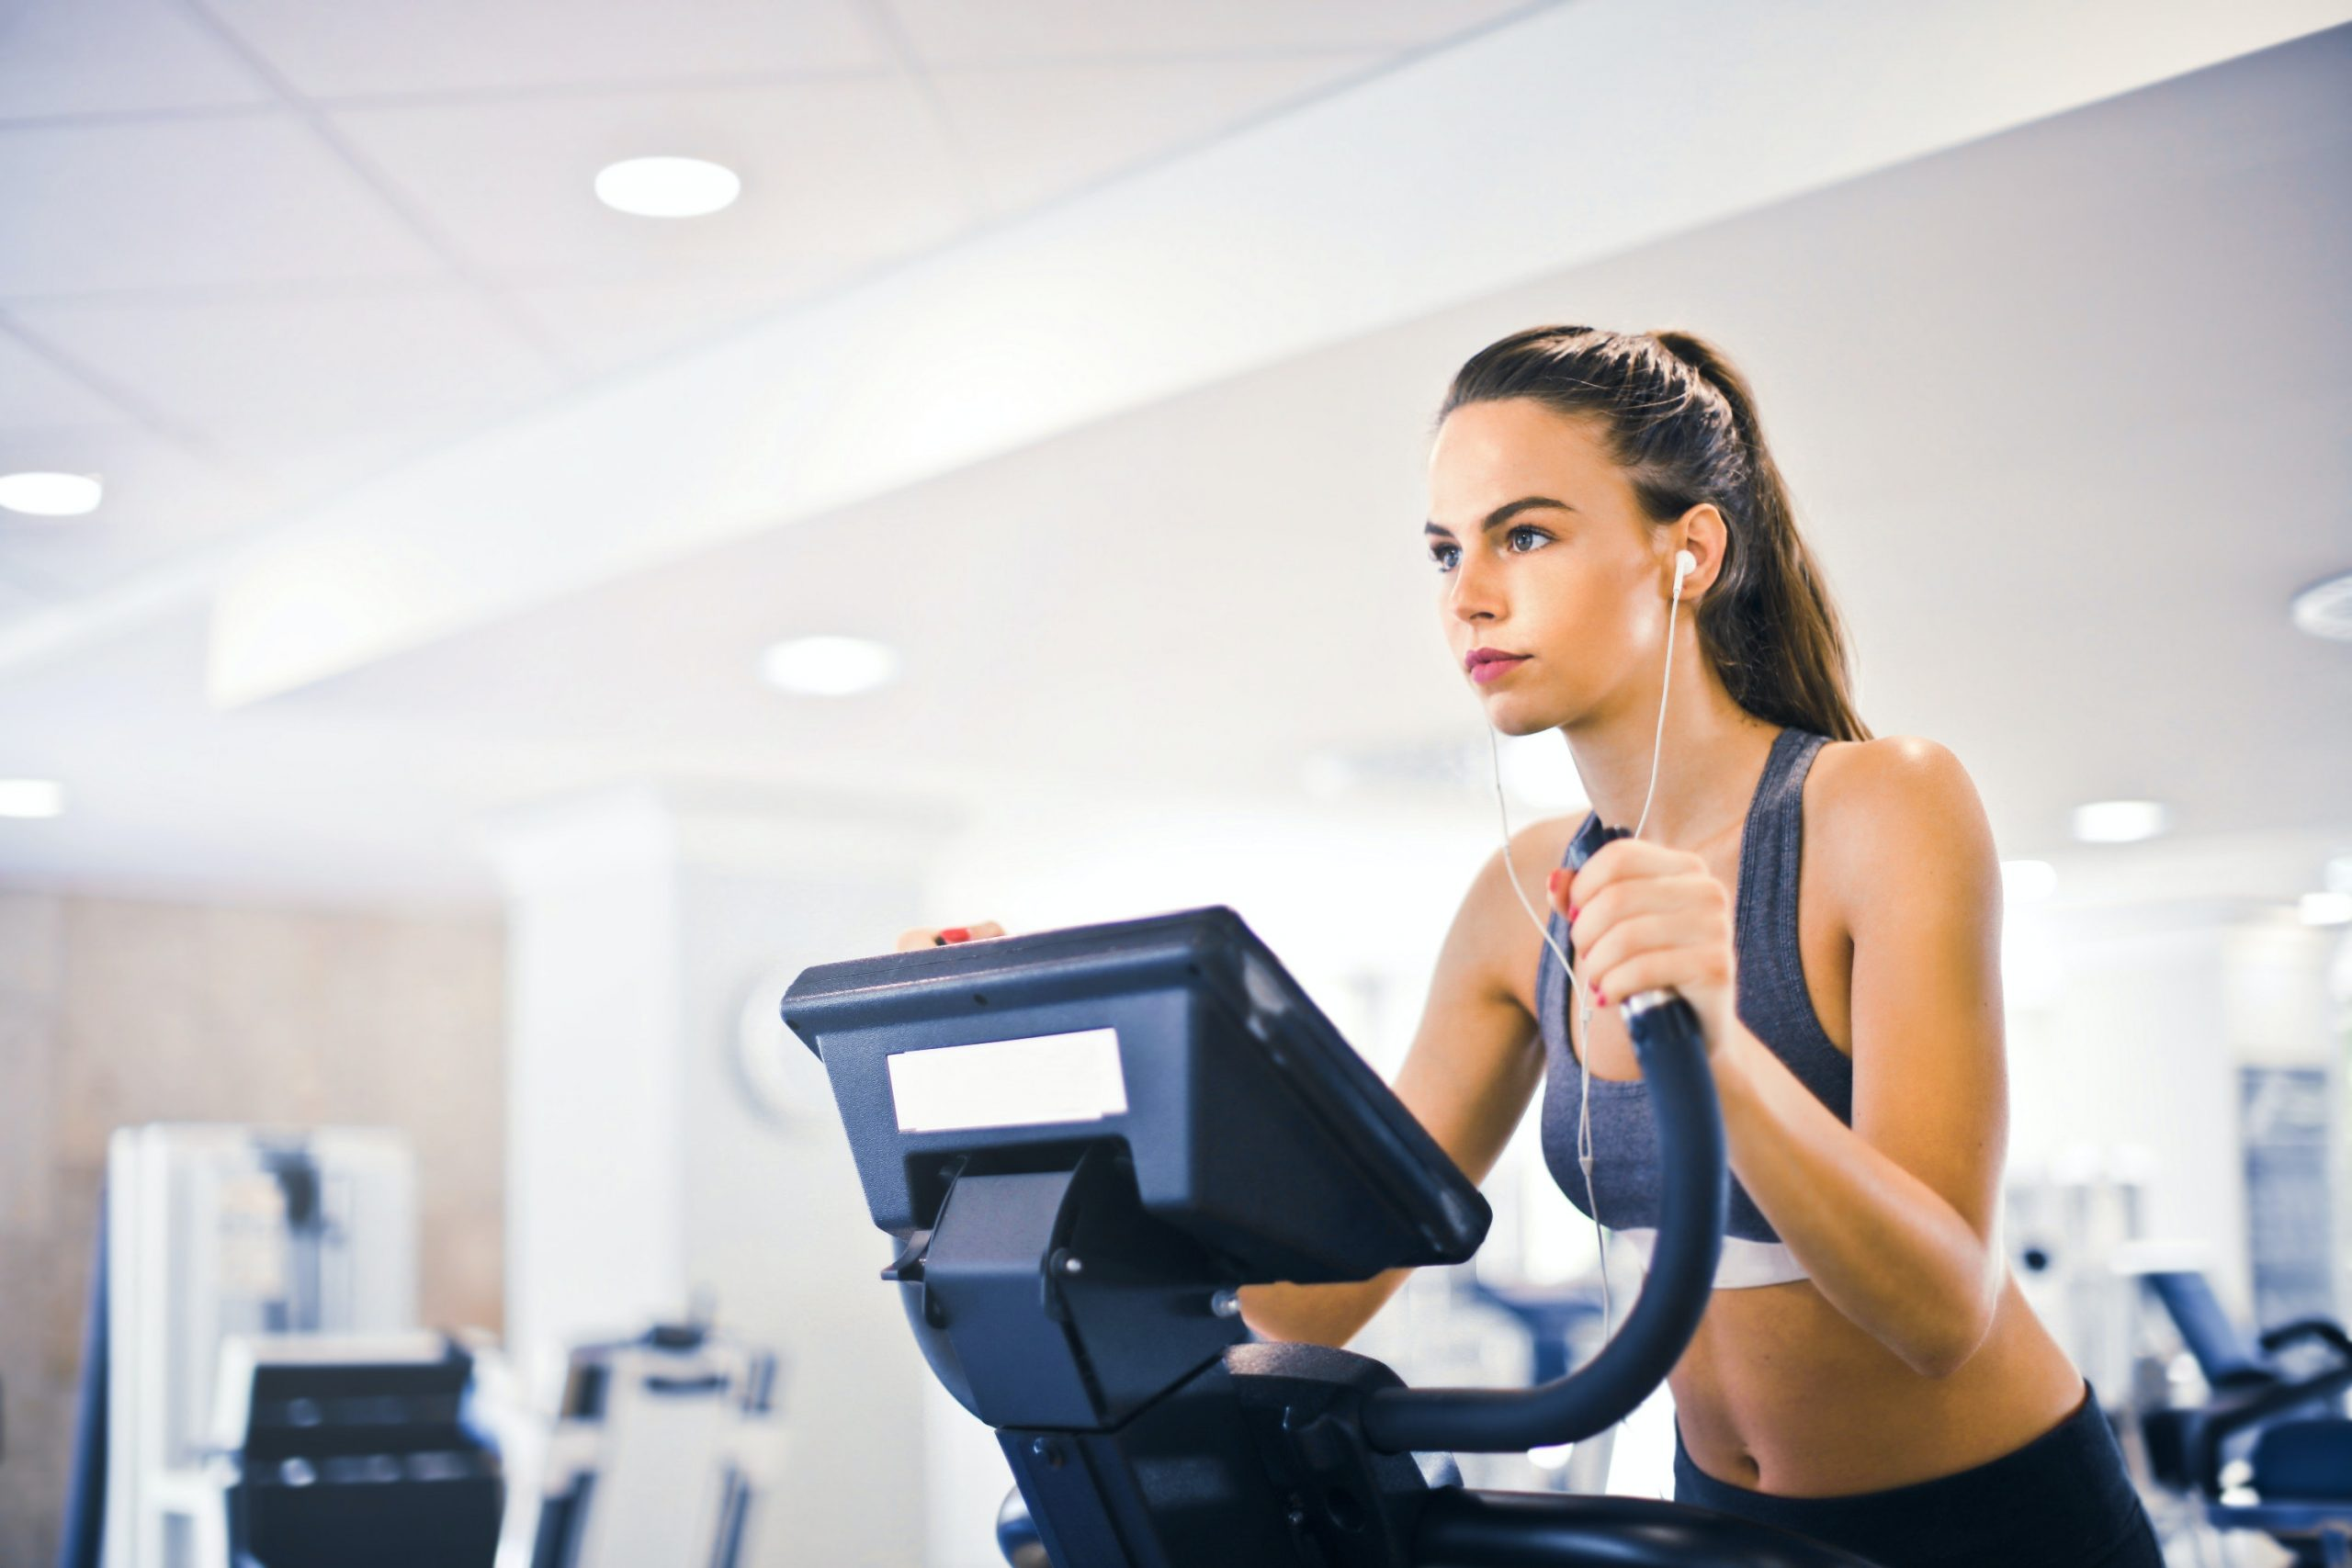 Female exerciseing in gym